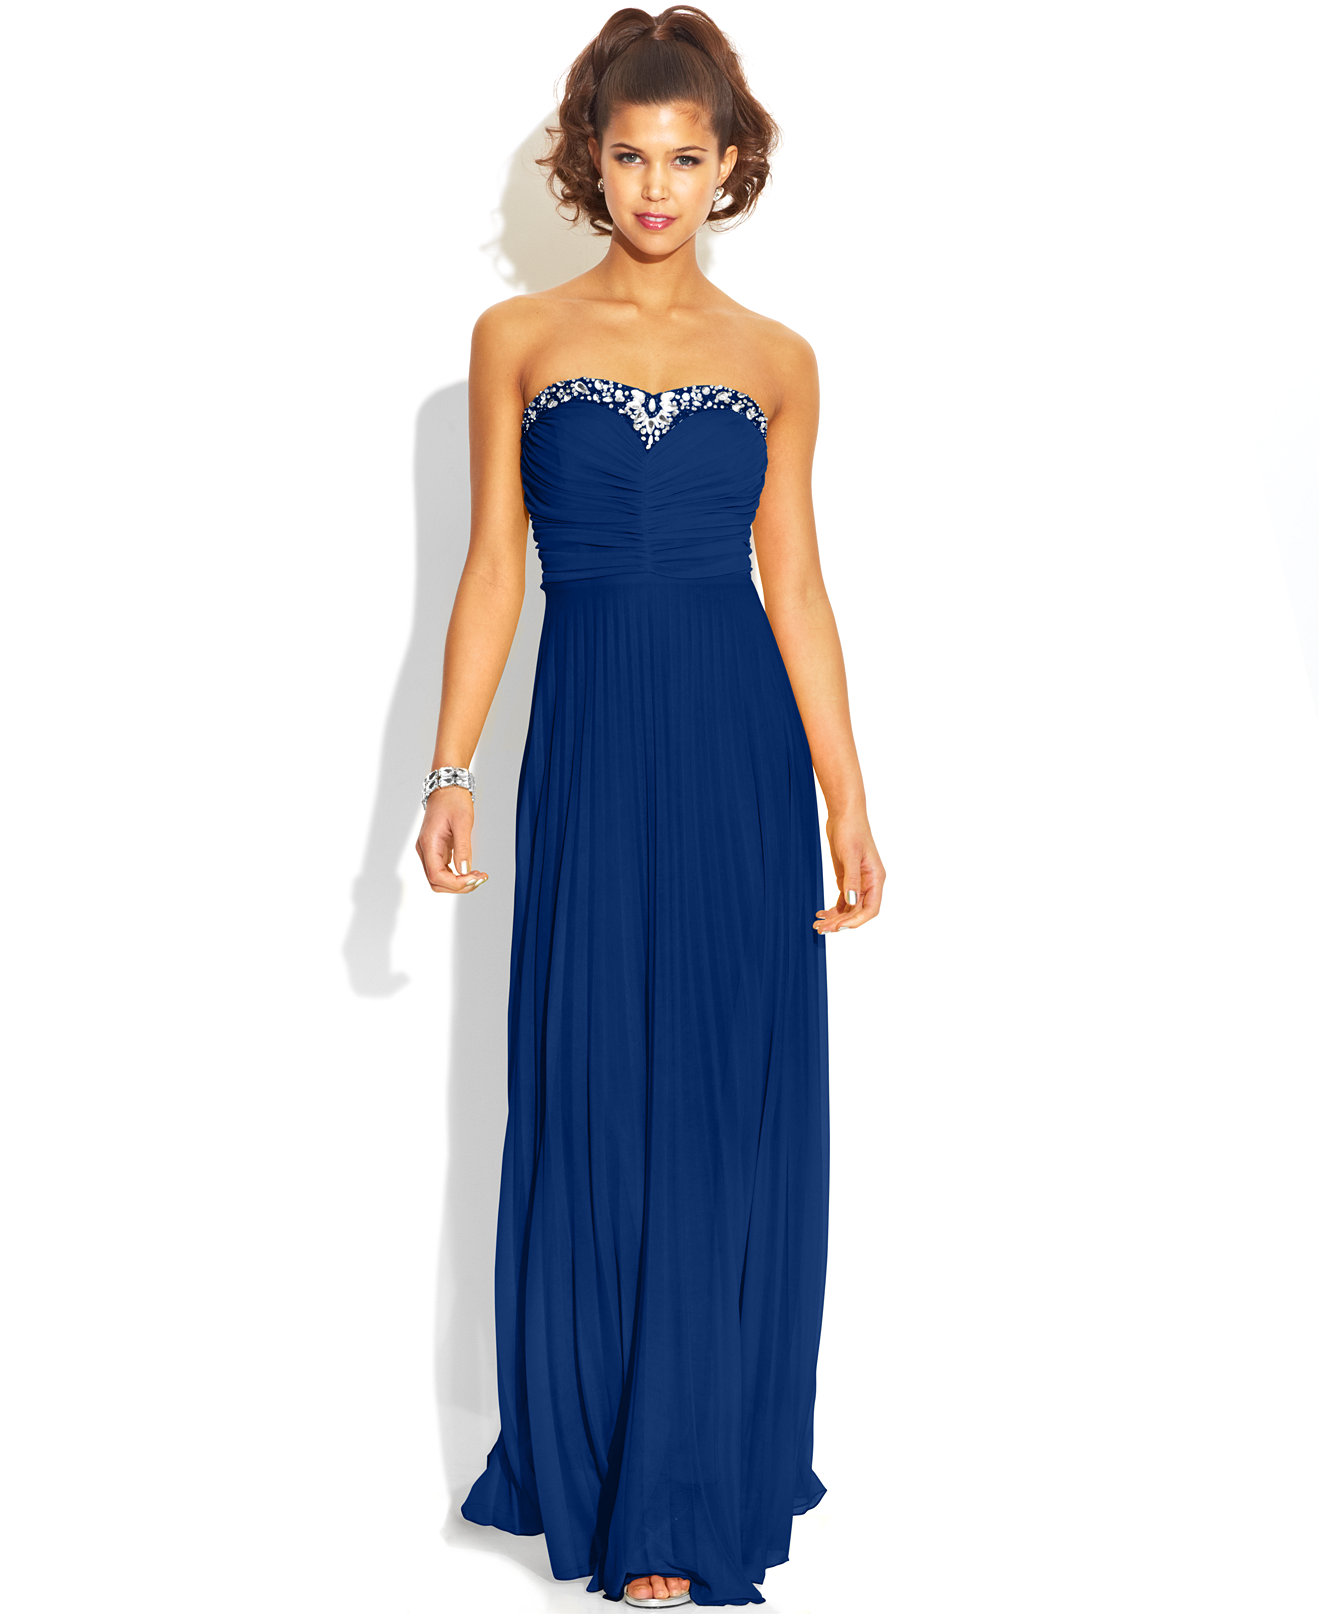 Prom Dresses & New Styles All Colors & Sizes | JJ's House.